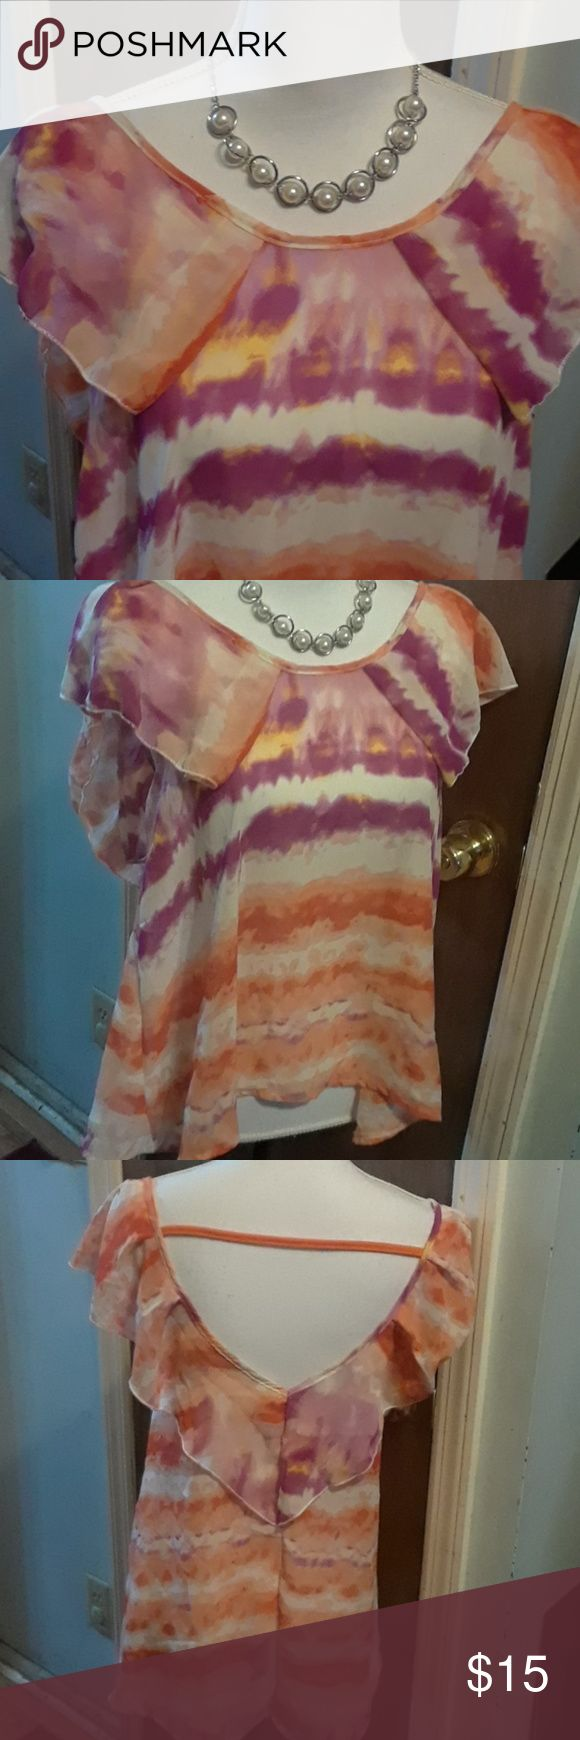 Adorable Tie Die top, size XL Multi colored short sleeve top. Very light comfortable fabric. By Allora Tops Blouses